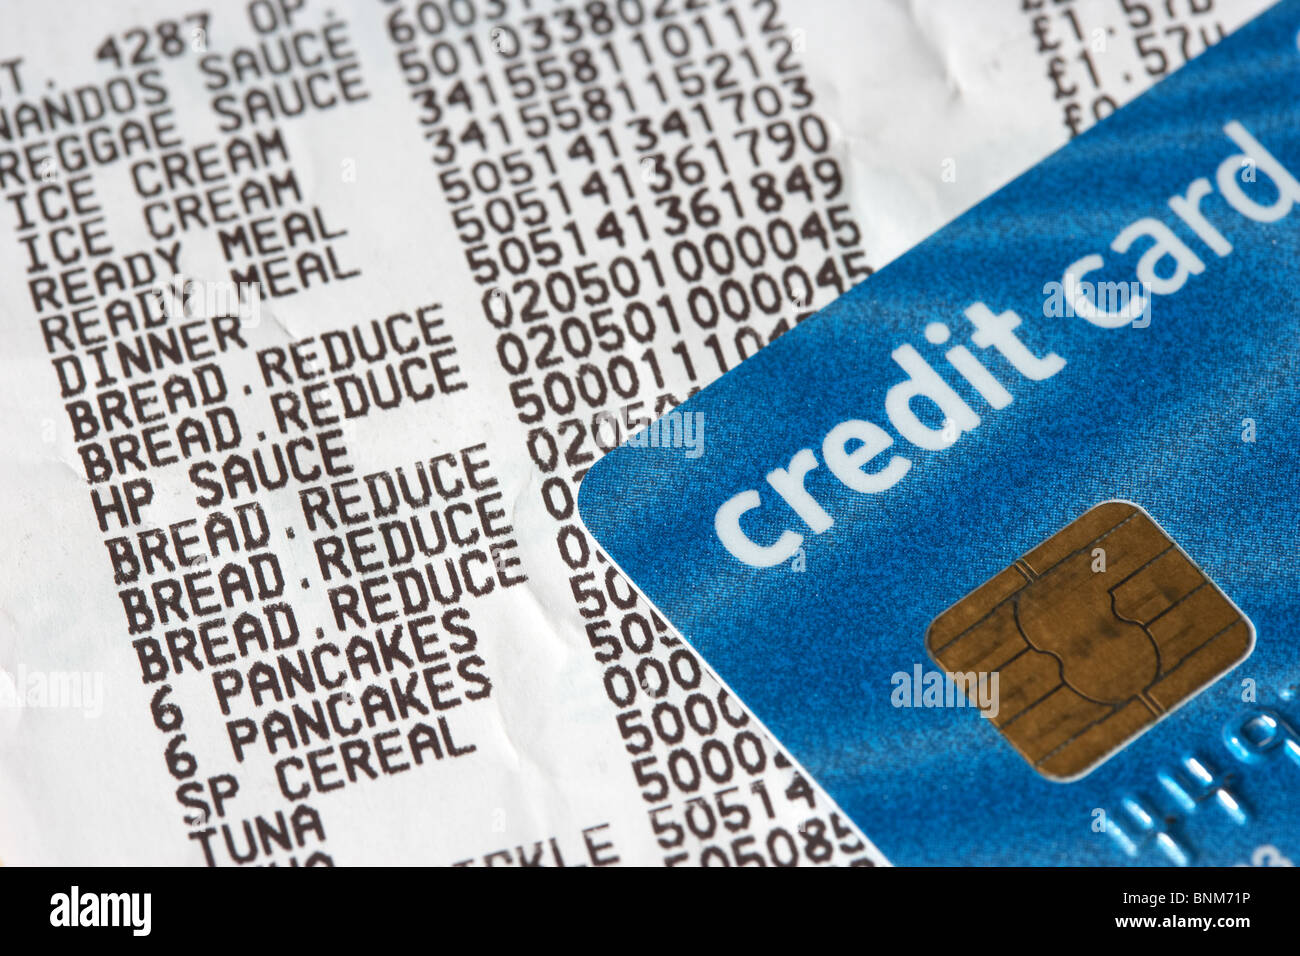 supermarket till receipt showing reduced items and credit card - Stock Image